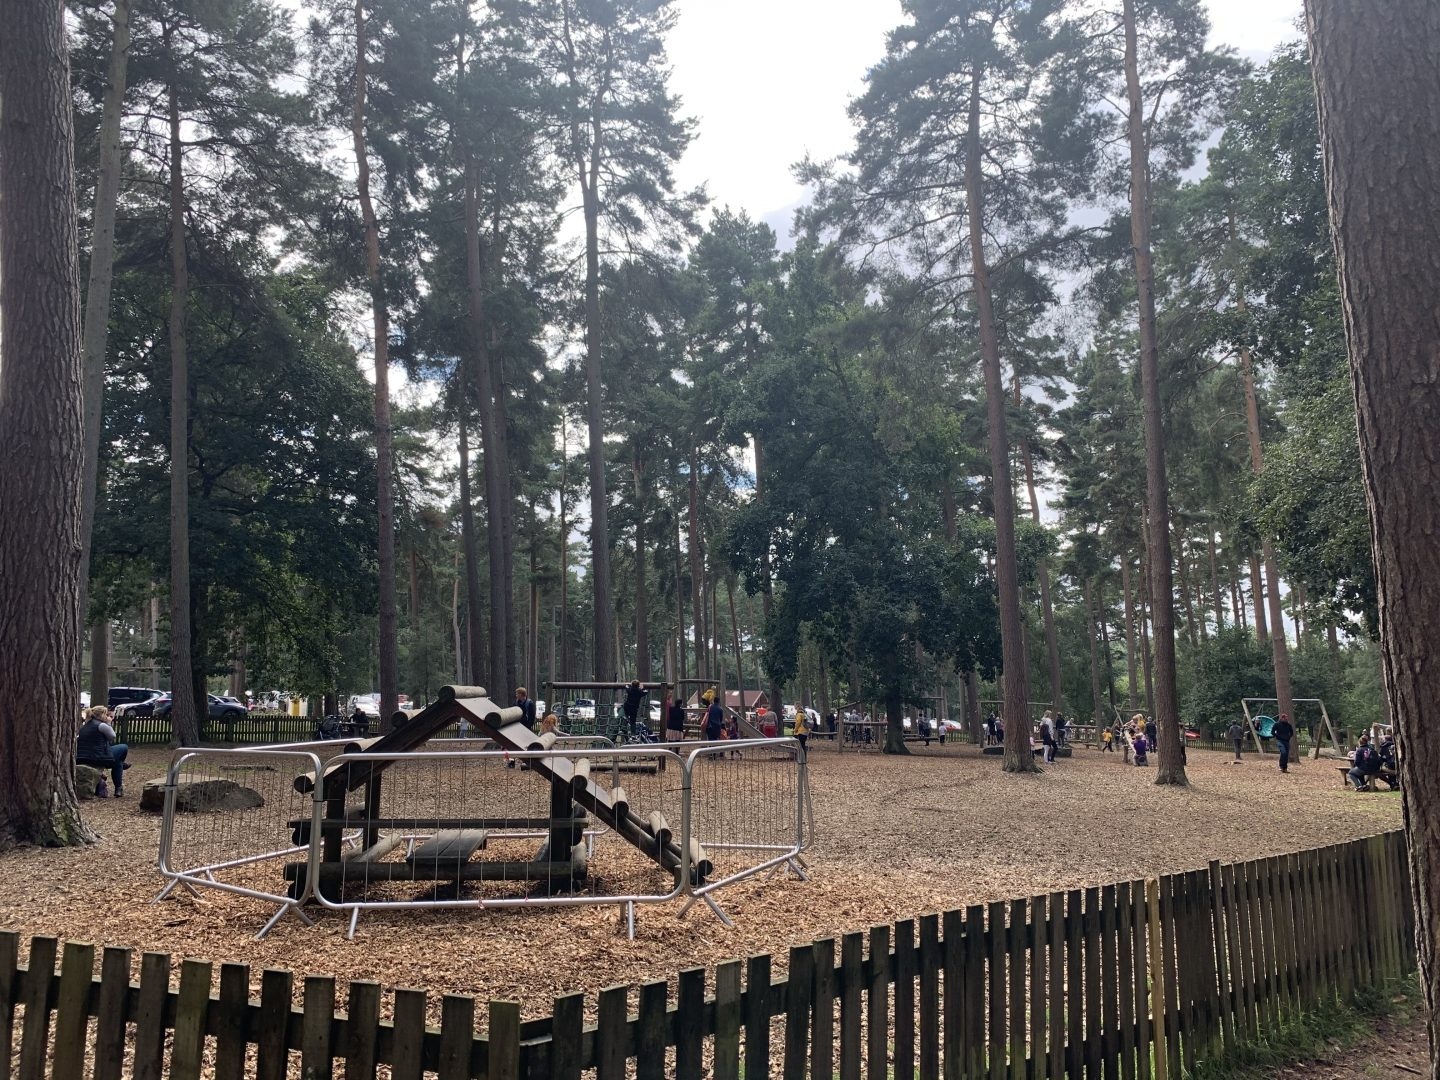 The play area at Cannock Chase